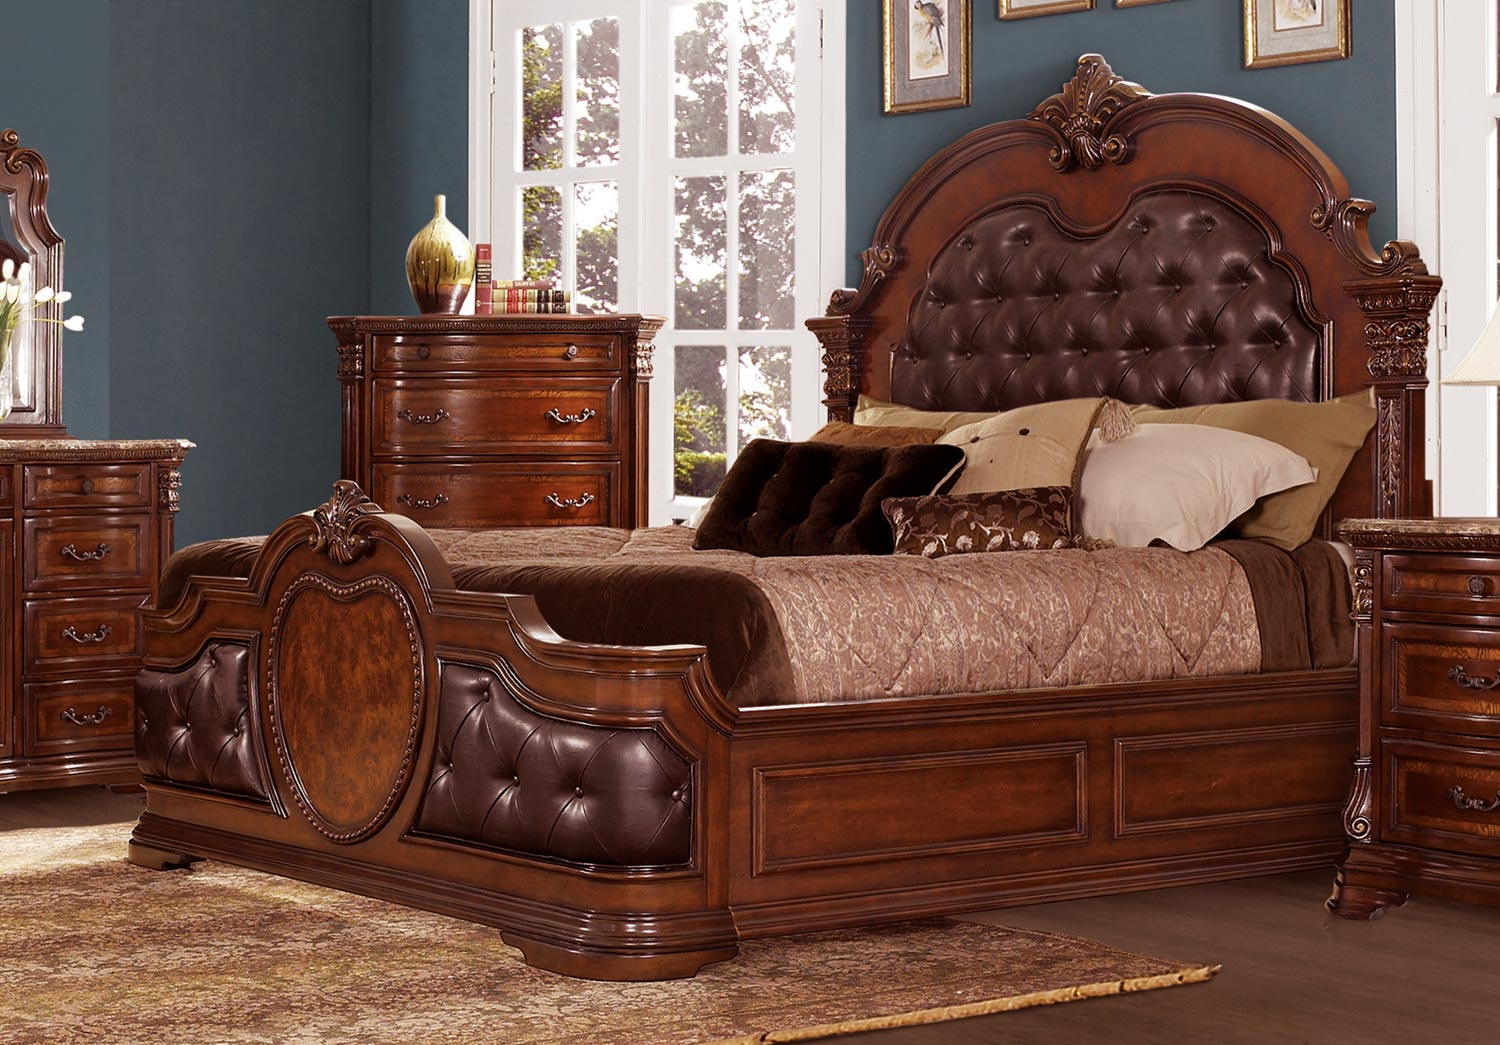 Homelegance Antoinetta Upholstered Bed Warm Cherry